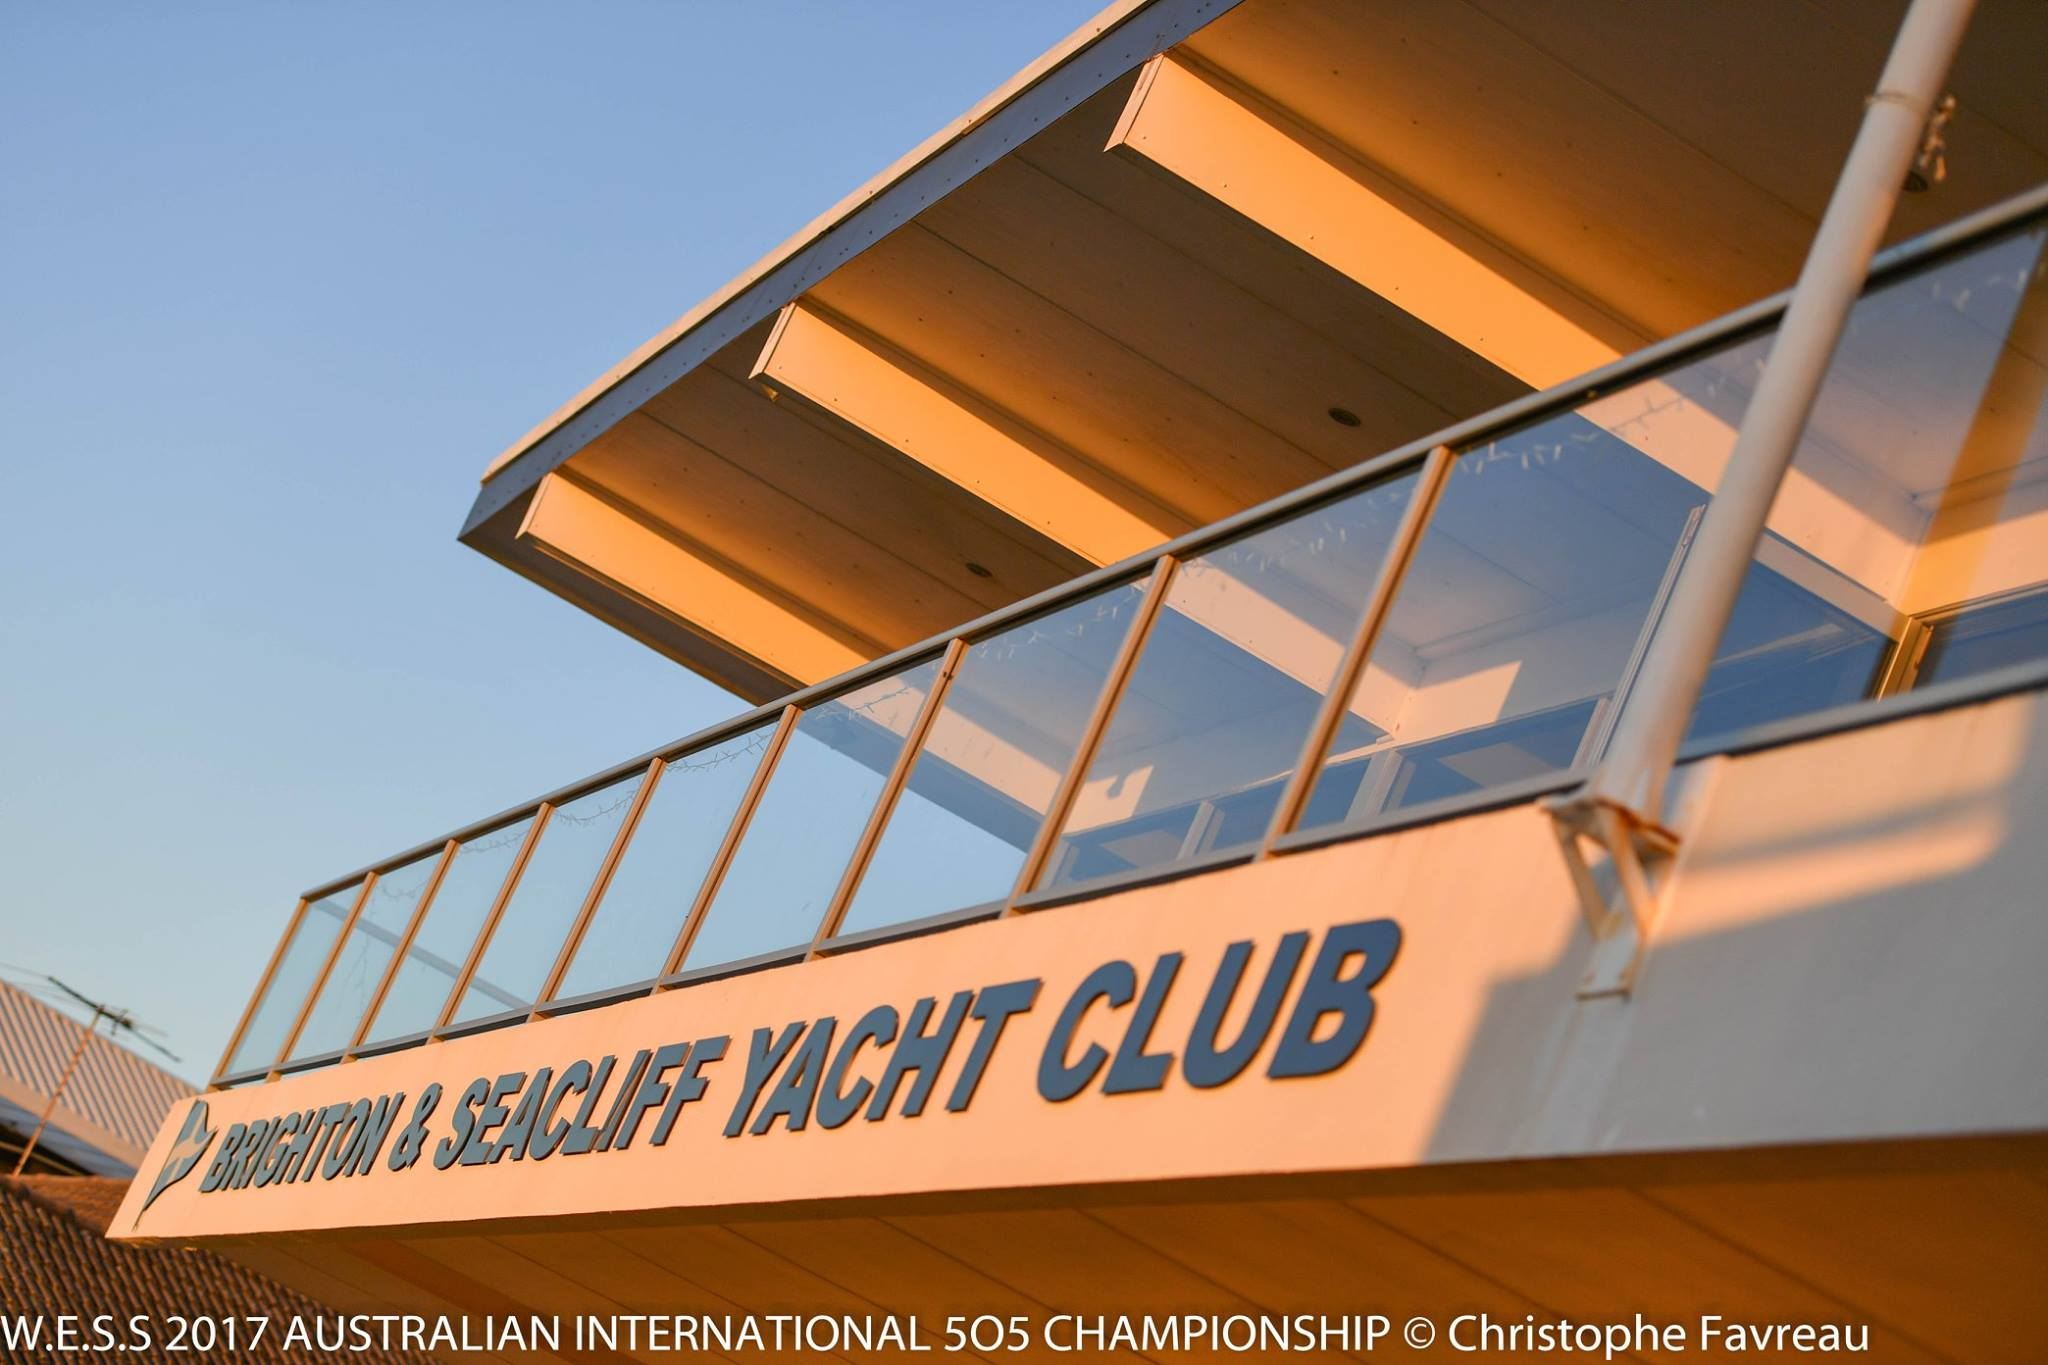 The Brighton and Seacliff Yacht Club is a beautiful part of the Adelaide coastline. Photos: Christophe Favreau